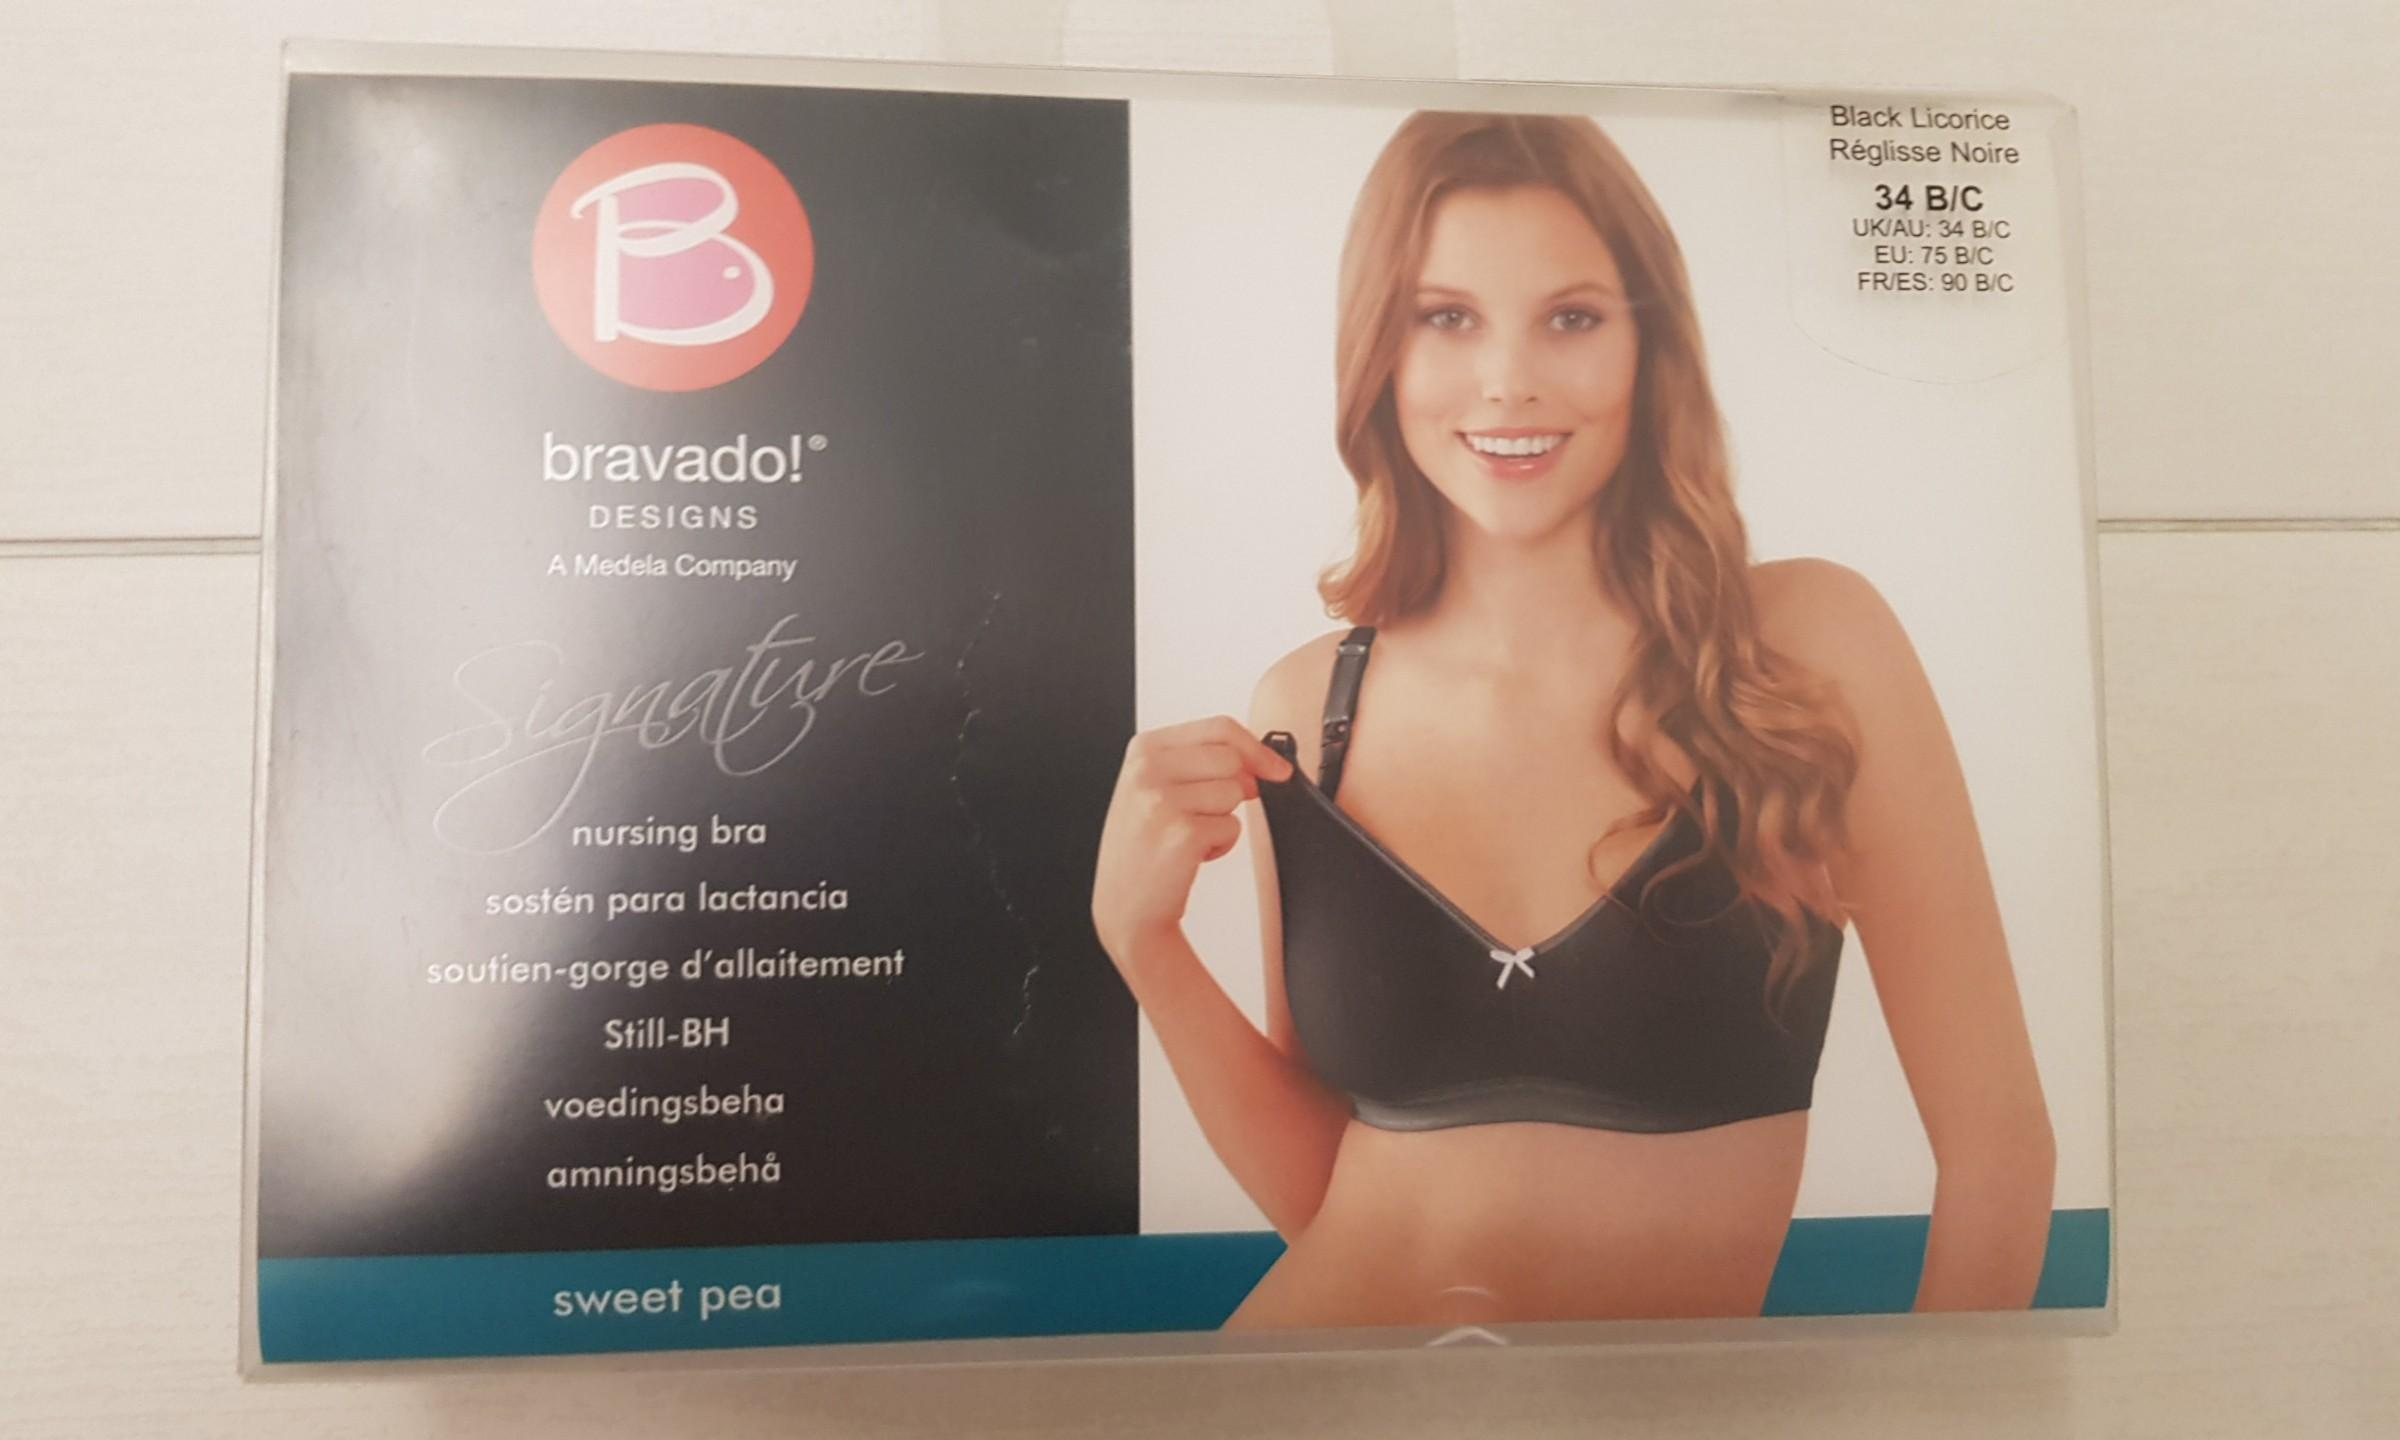 Bravado sweet pea nursing bra - black